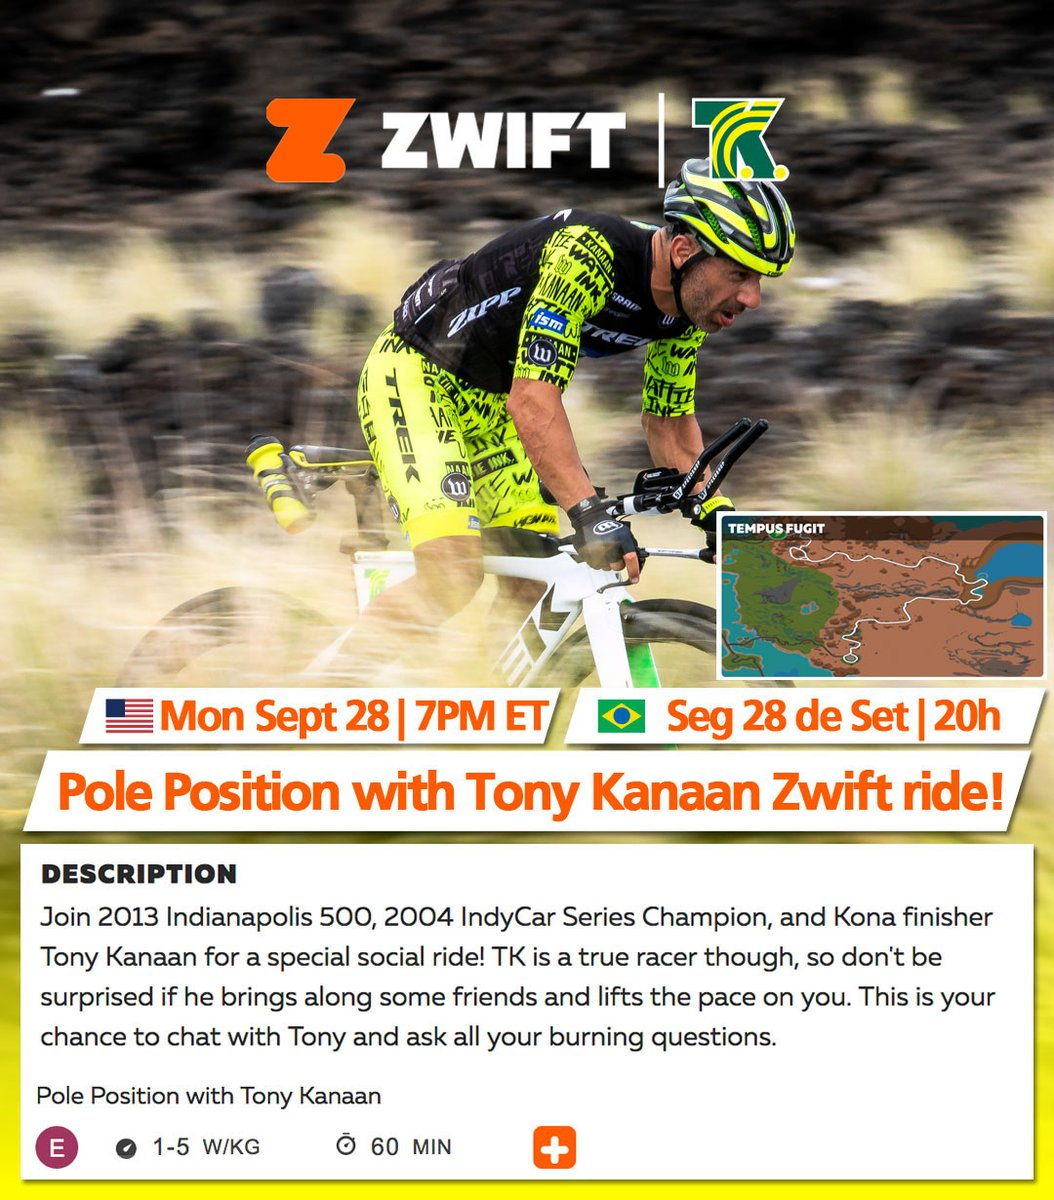 🇺🇸 🗓 ⏰ ➡️ Tonight is @gozwift Pole Position with Tony Kanaan ride night! Join me at 7p ET for some good @GoZwift @GoZwiftTri bike 🚲 ride. Find the ride on the Companion app or 👉🏻 https://t.co/7XTFMEbZyy #GoZwift https://t.co/7JYrd3Ym3B